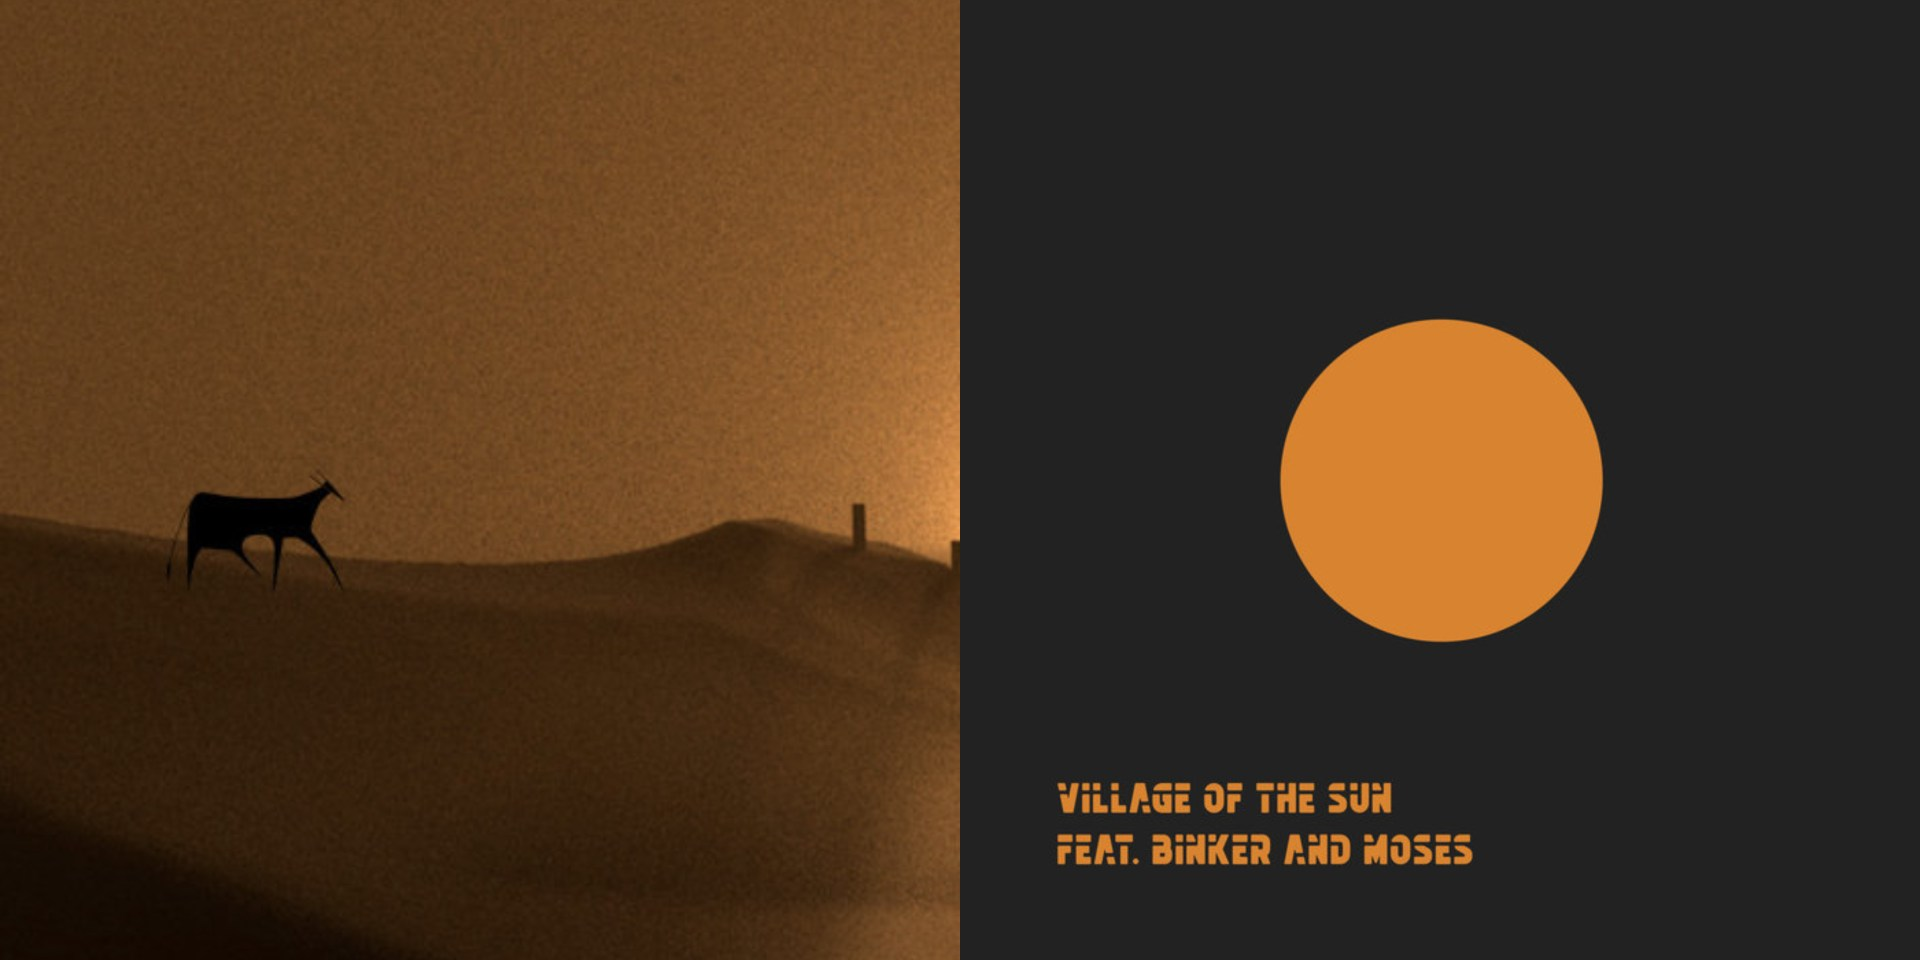 Village of the Sun embodies a hybrid of electronic beats, heady jazz improvisation, and sheer, raw energy.